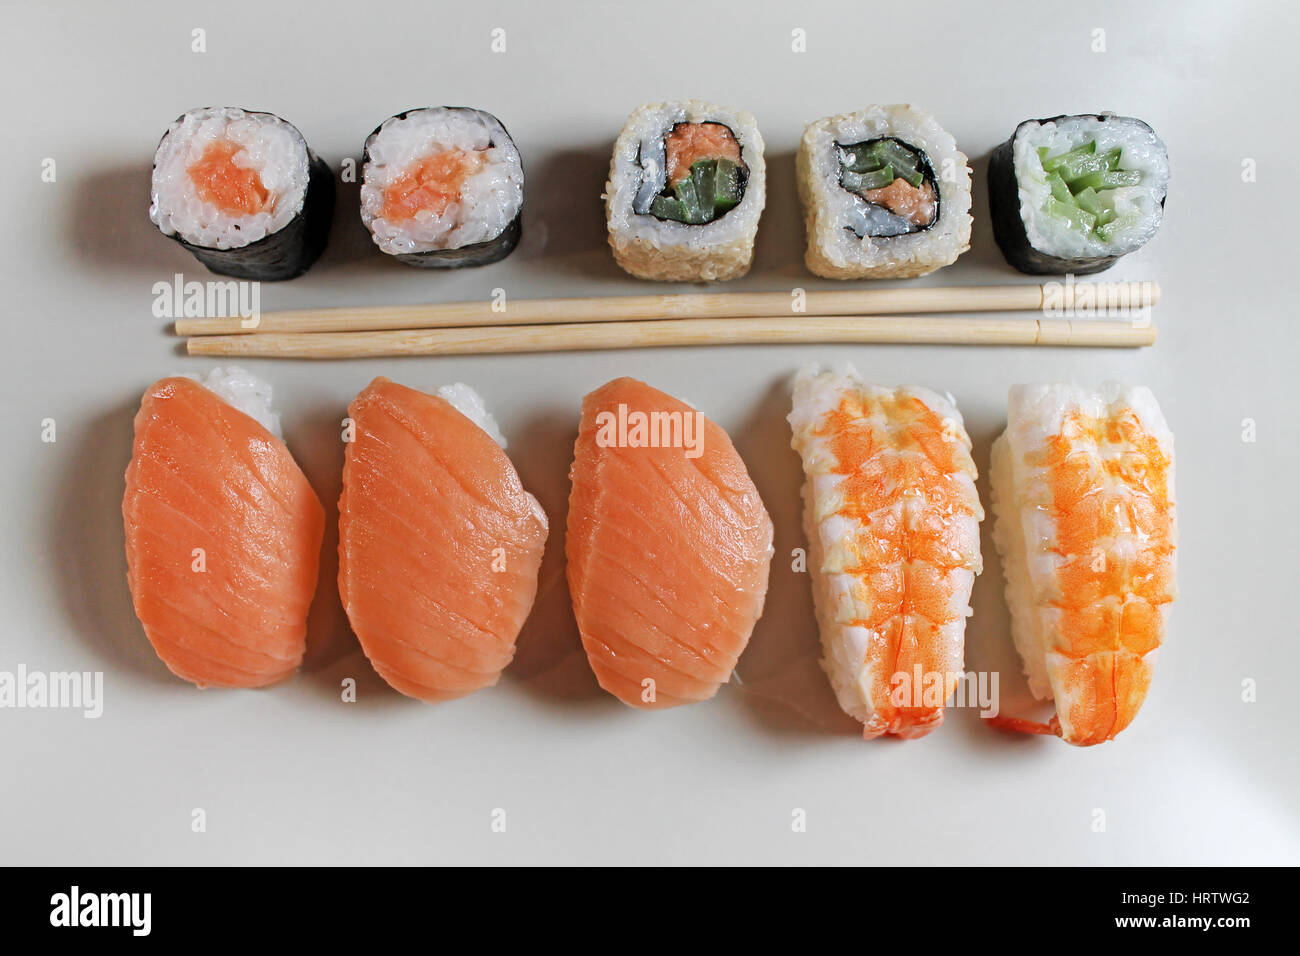 Preparation sushi roll on restaurant - Stock Image